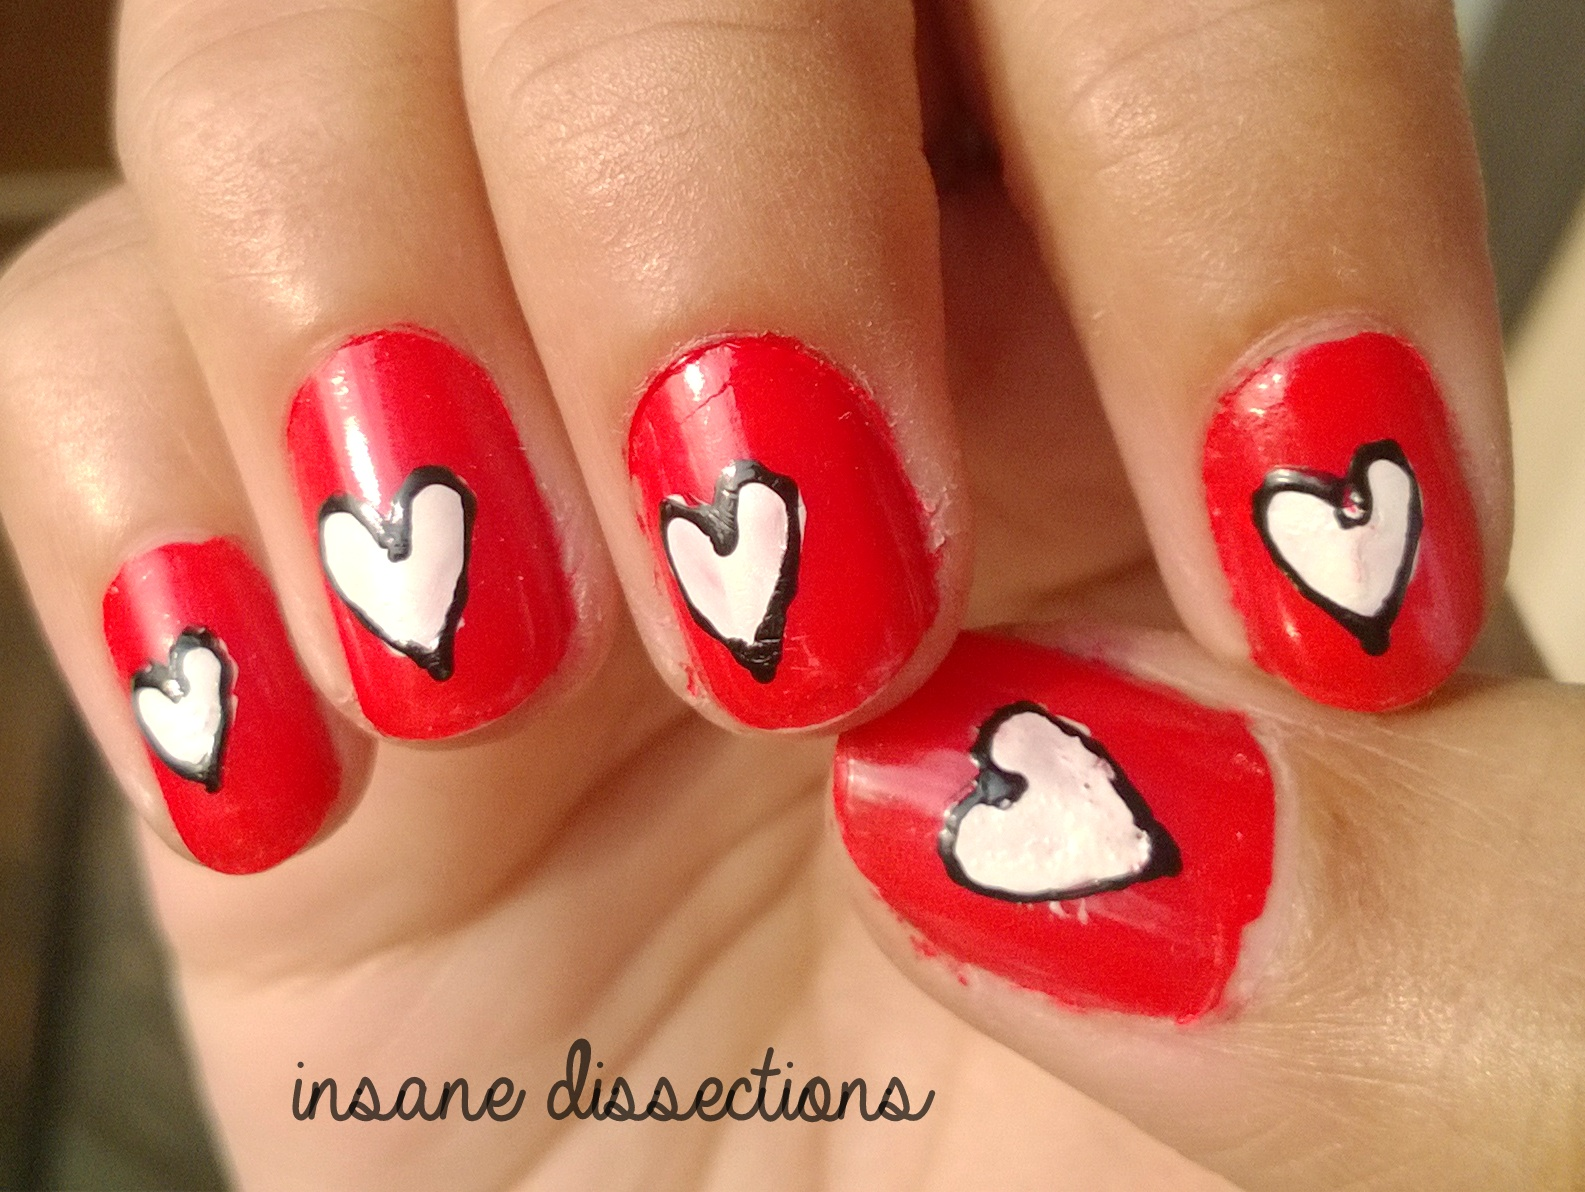 Valentines Day Nail Art Part 3 Insane Dissections